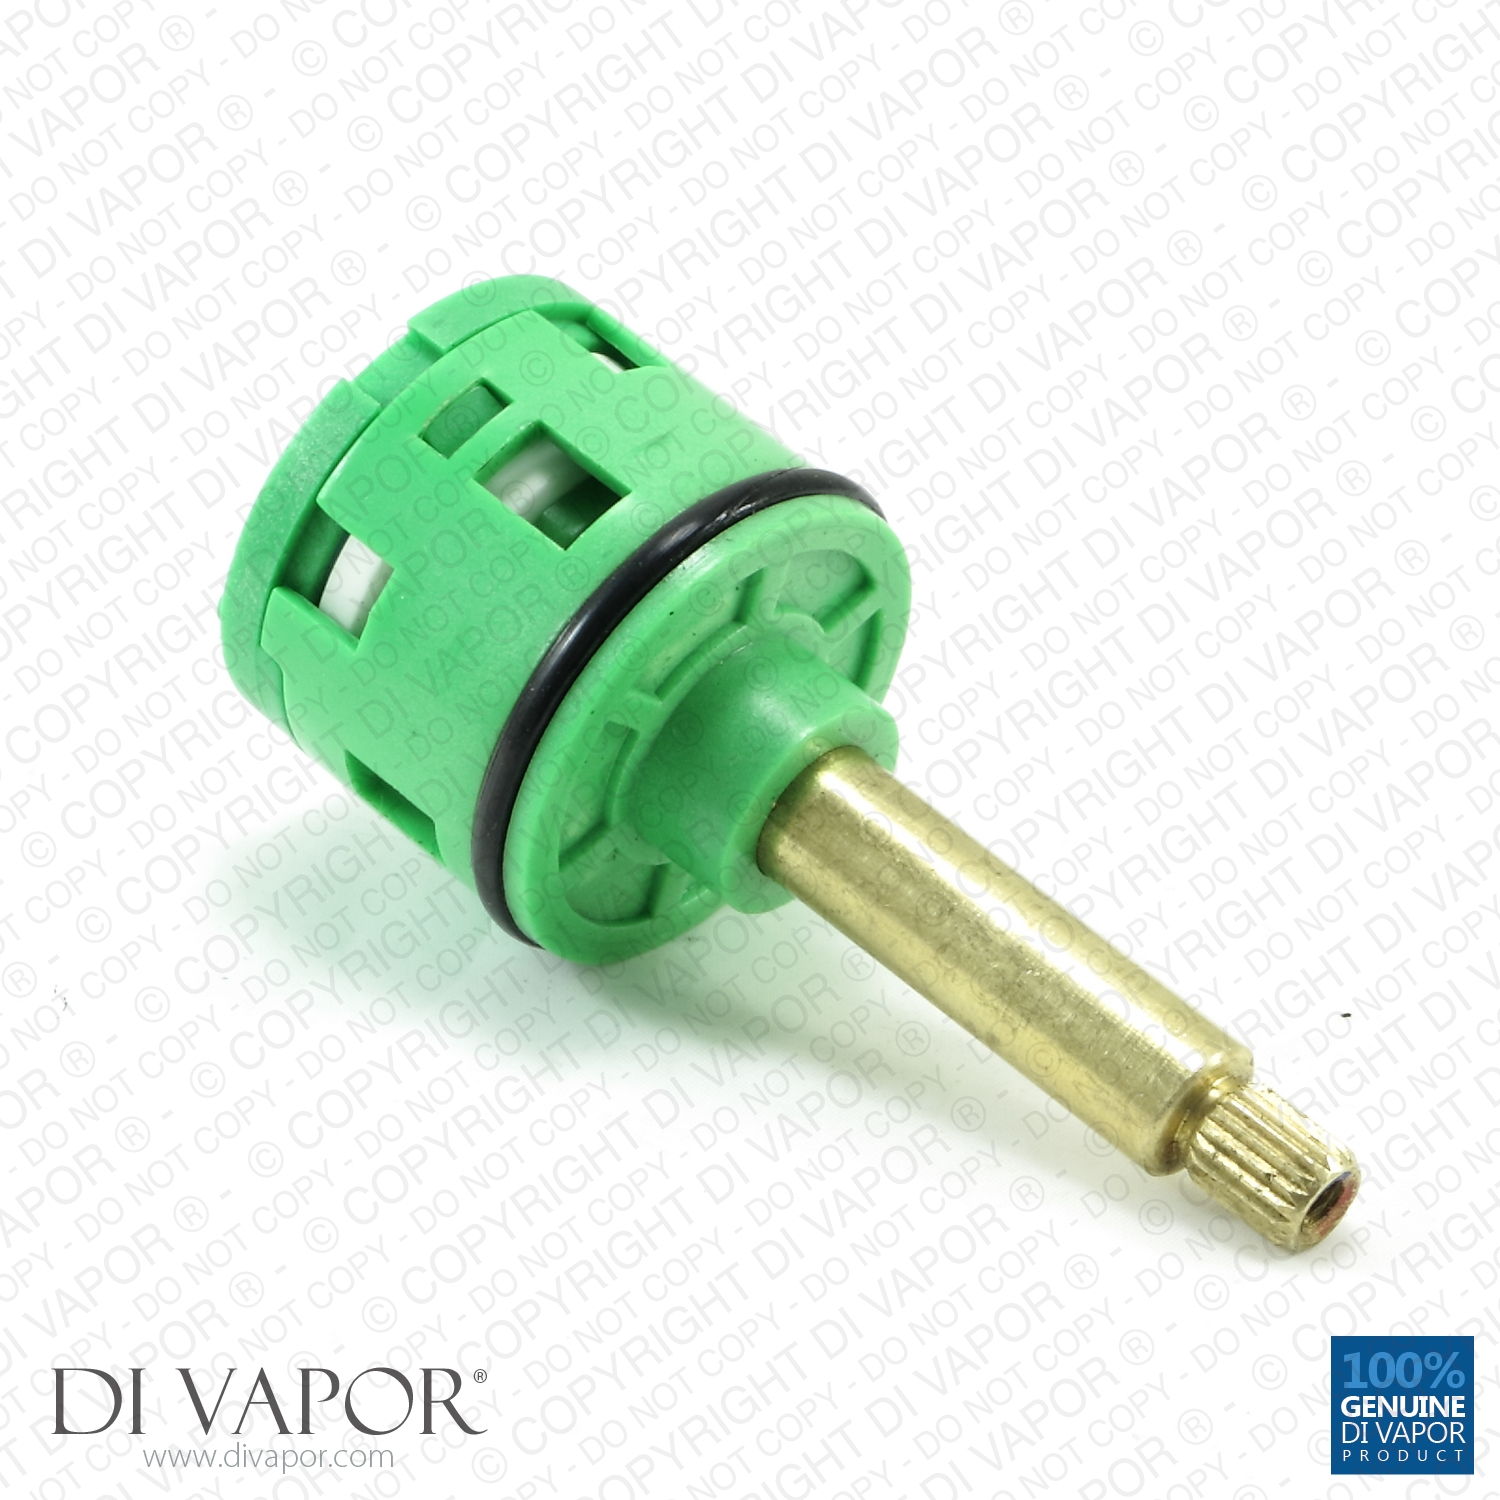 4 Way Diverter Cartridge For Shower Valves 4 Function Selector 35mm Diameter X 86mm Length